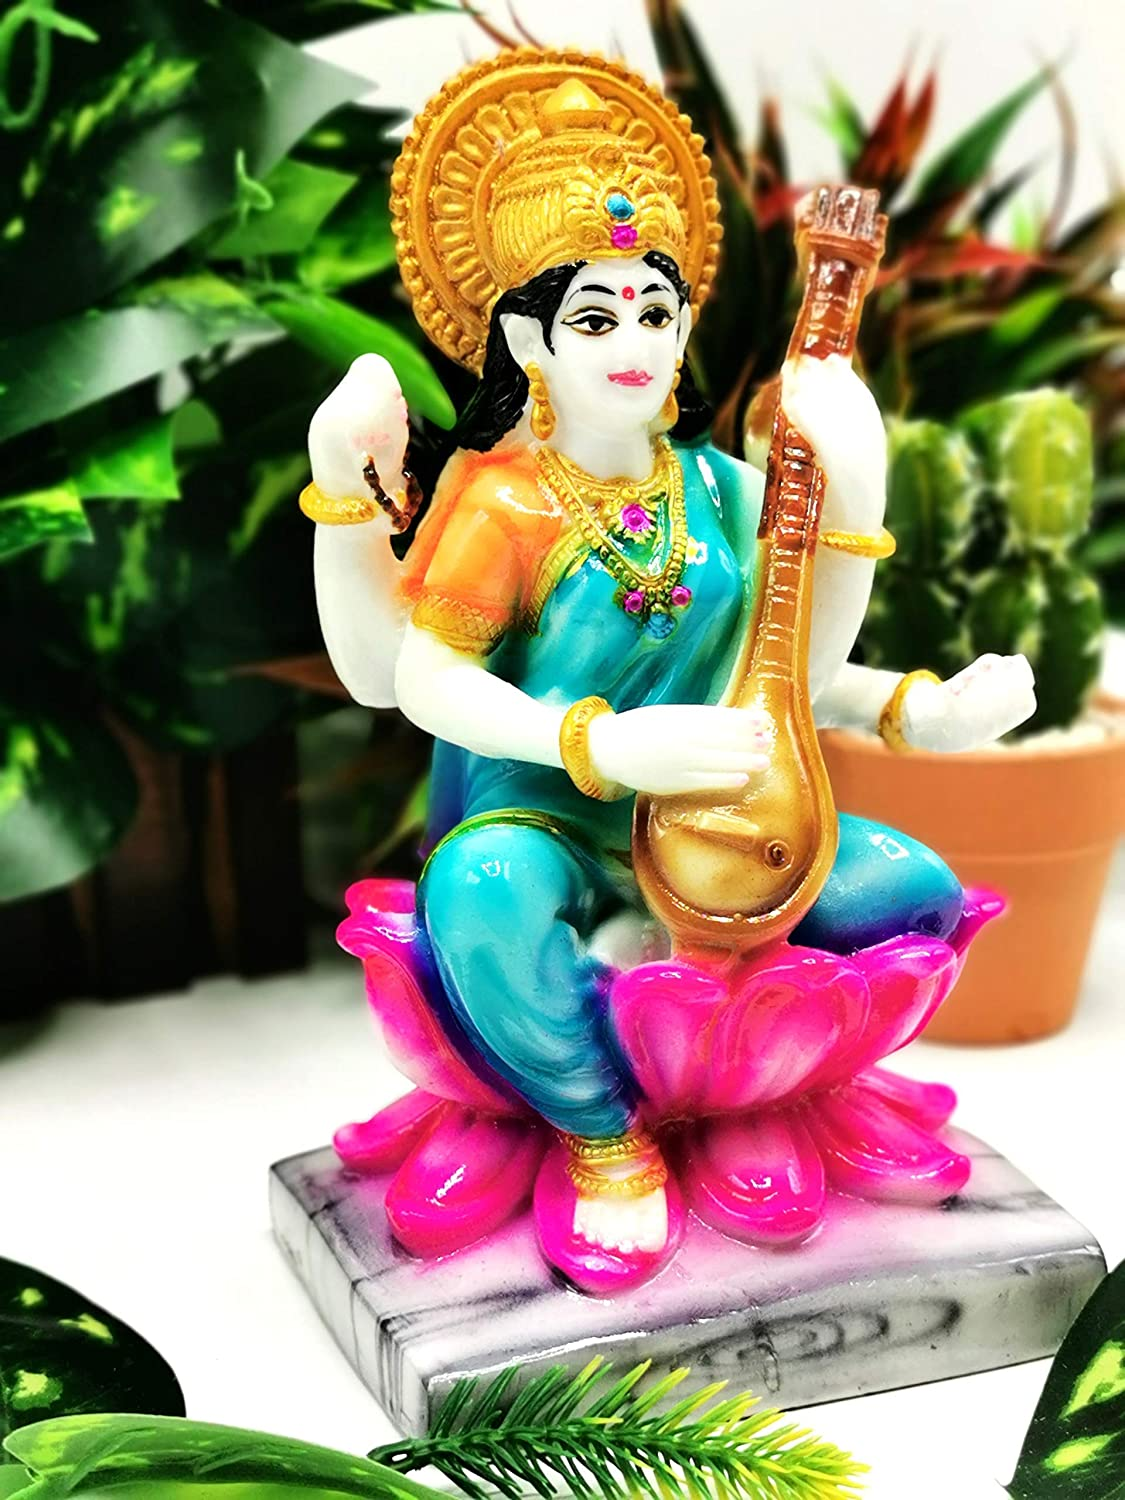 Goddess of Learning idol//murti//carving//figurine 1.3lb 7.5 inches and 590 gms - home decor//temple figurine Saraswati statue in polyresin